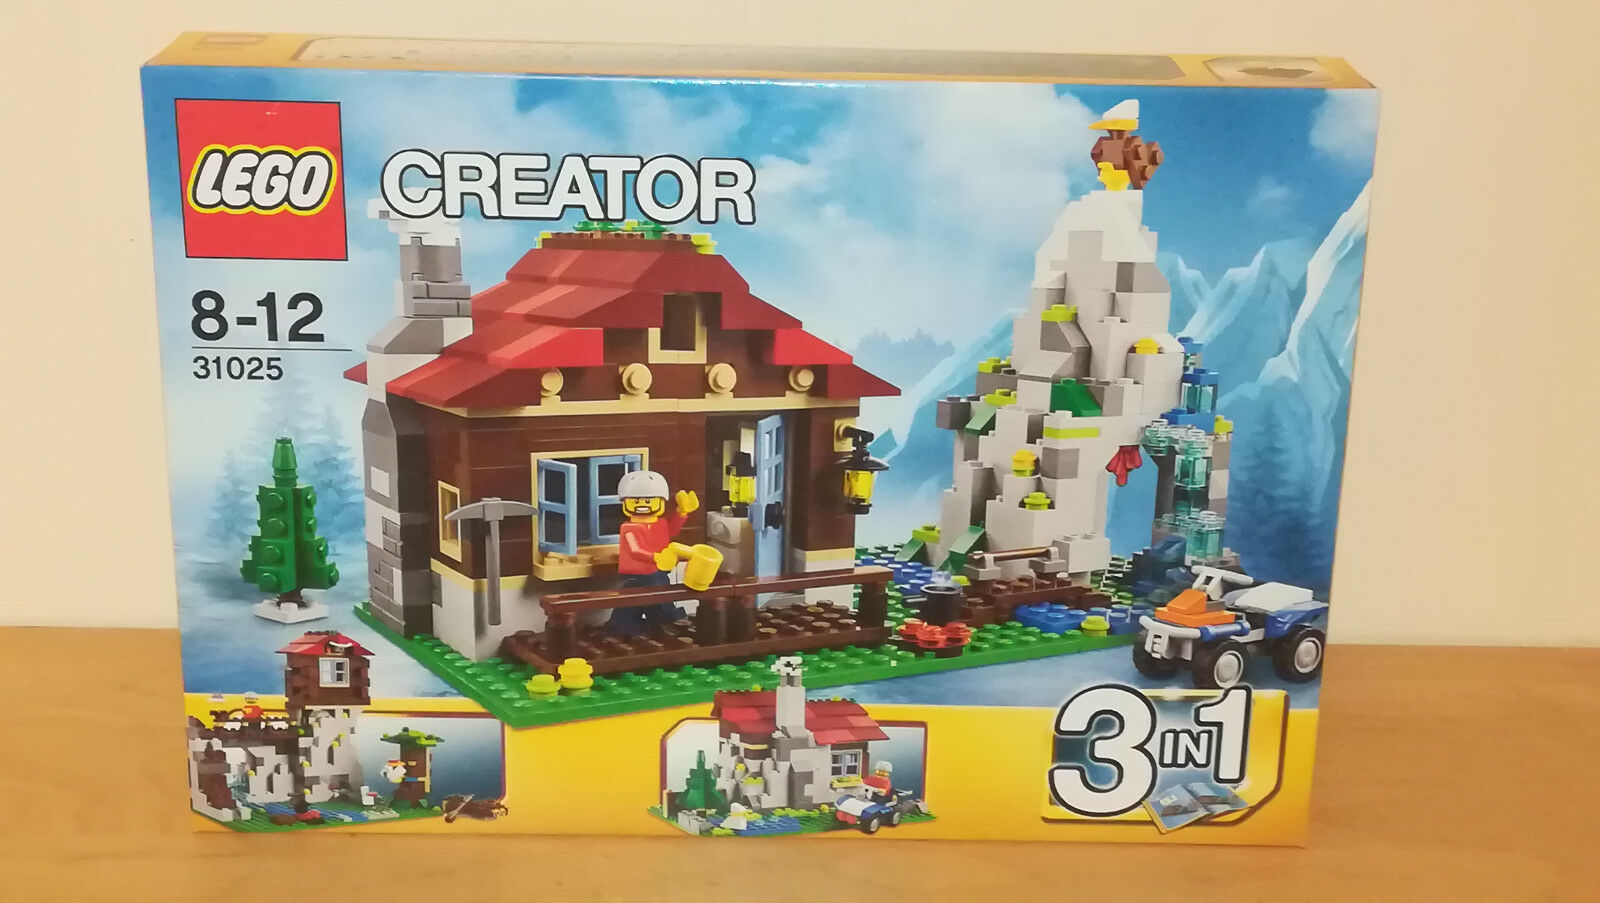 LEGO Creator 31025 MOUNTAIN HUT 3 in 1 - Brand new sealed boxASet